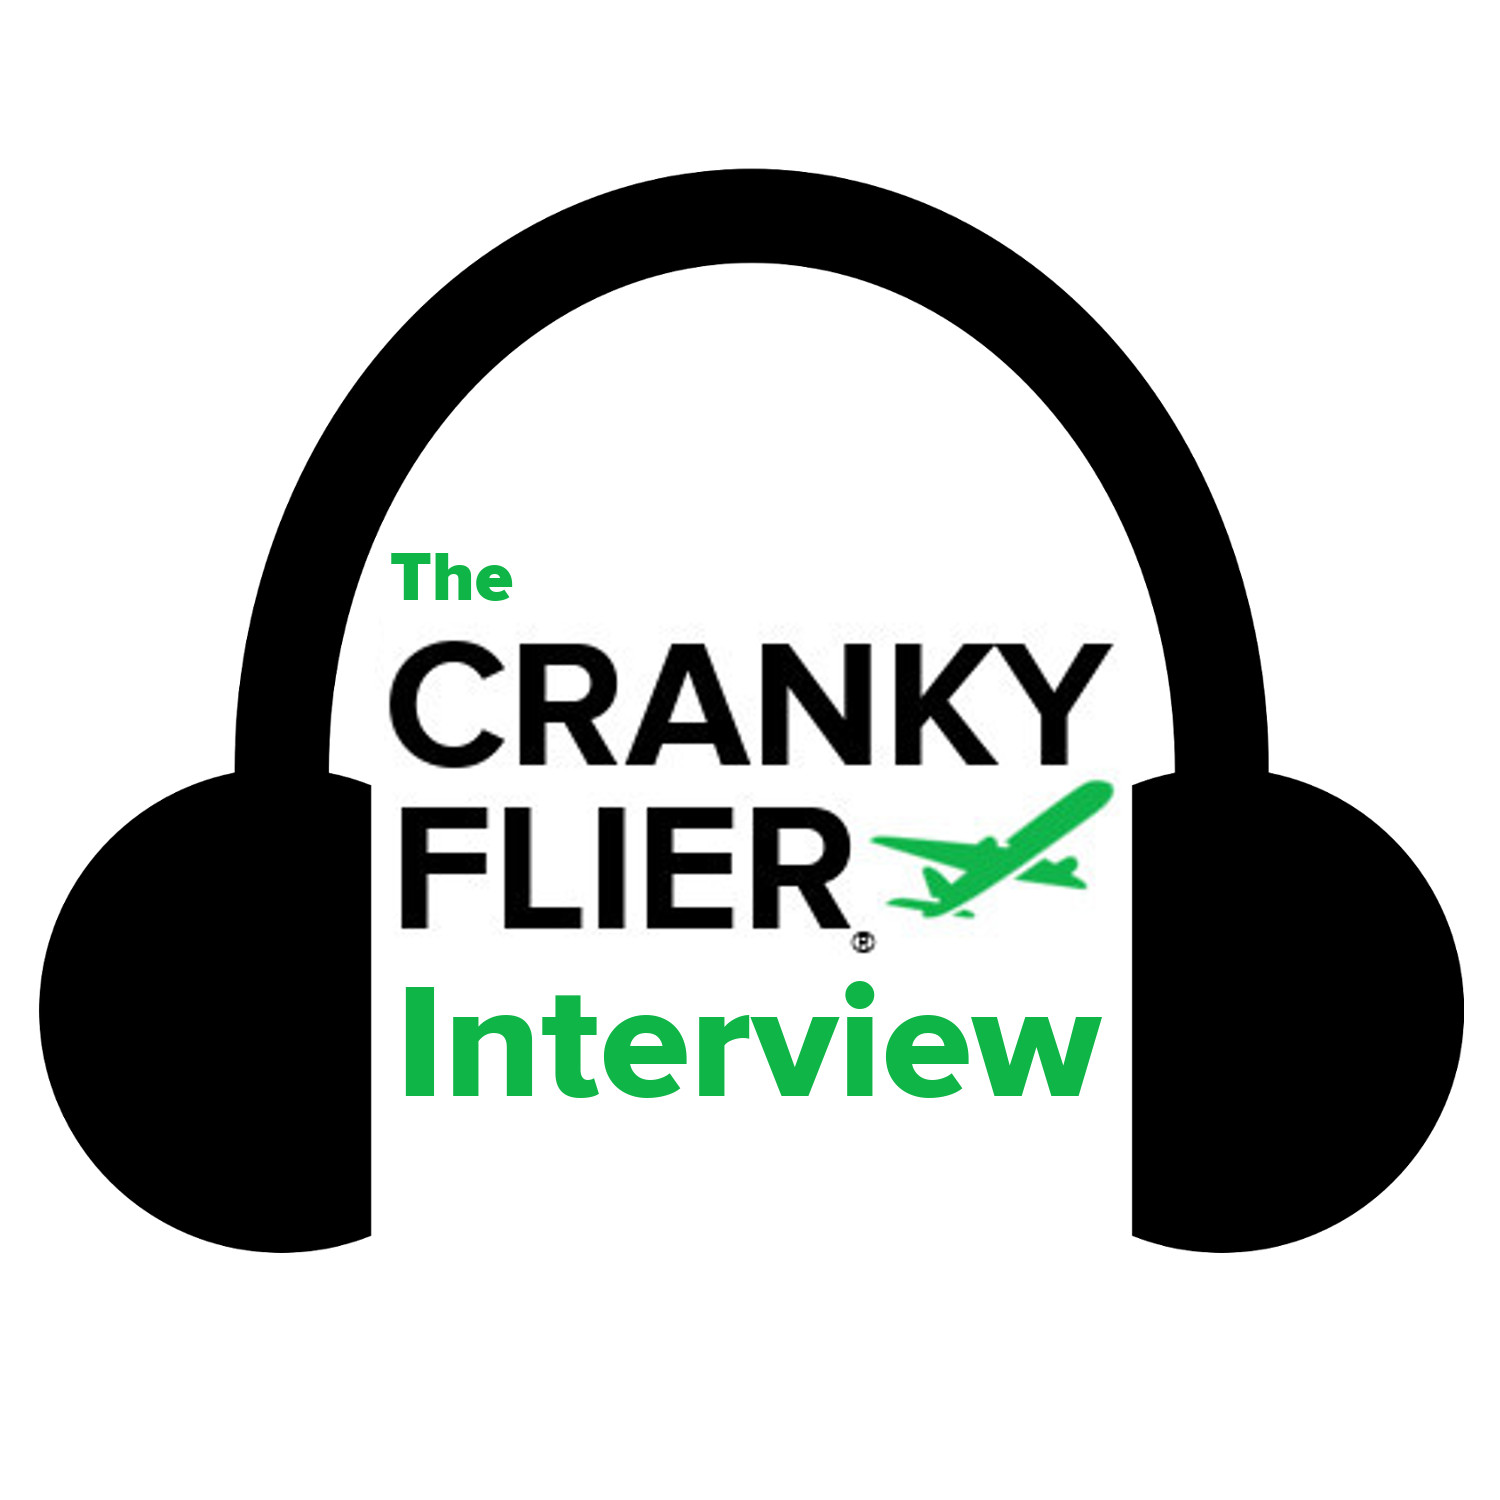 The Cranky Flier Interview